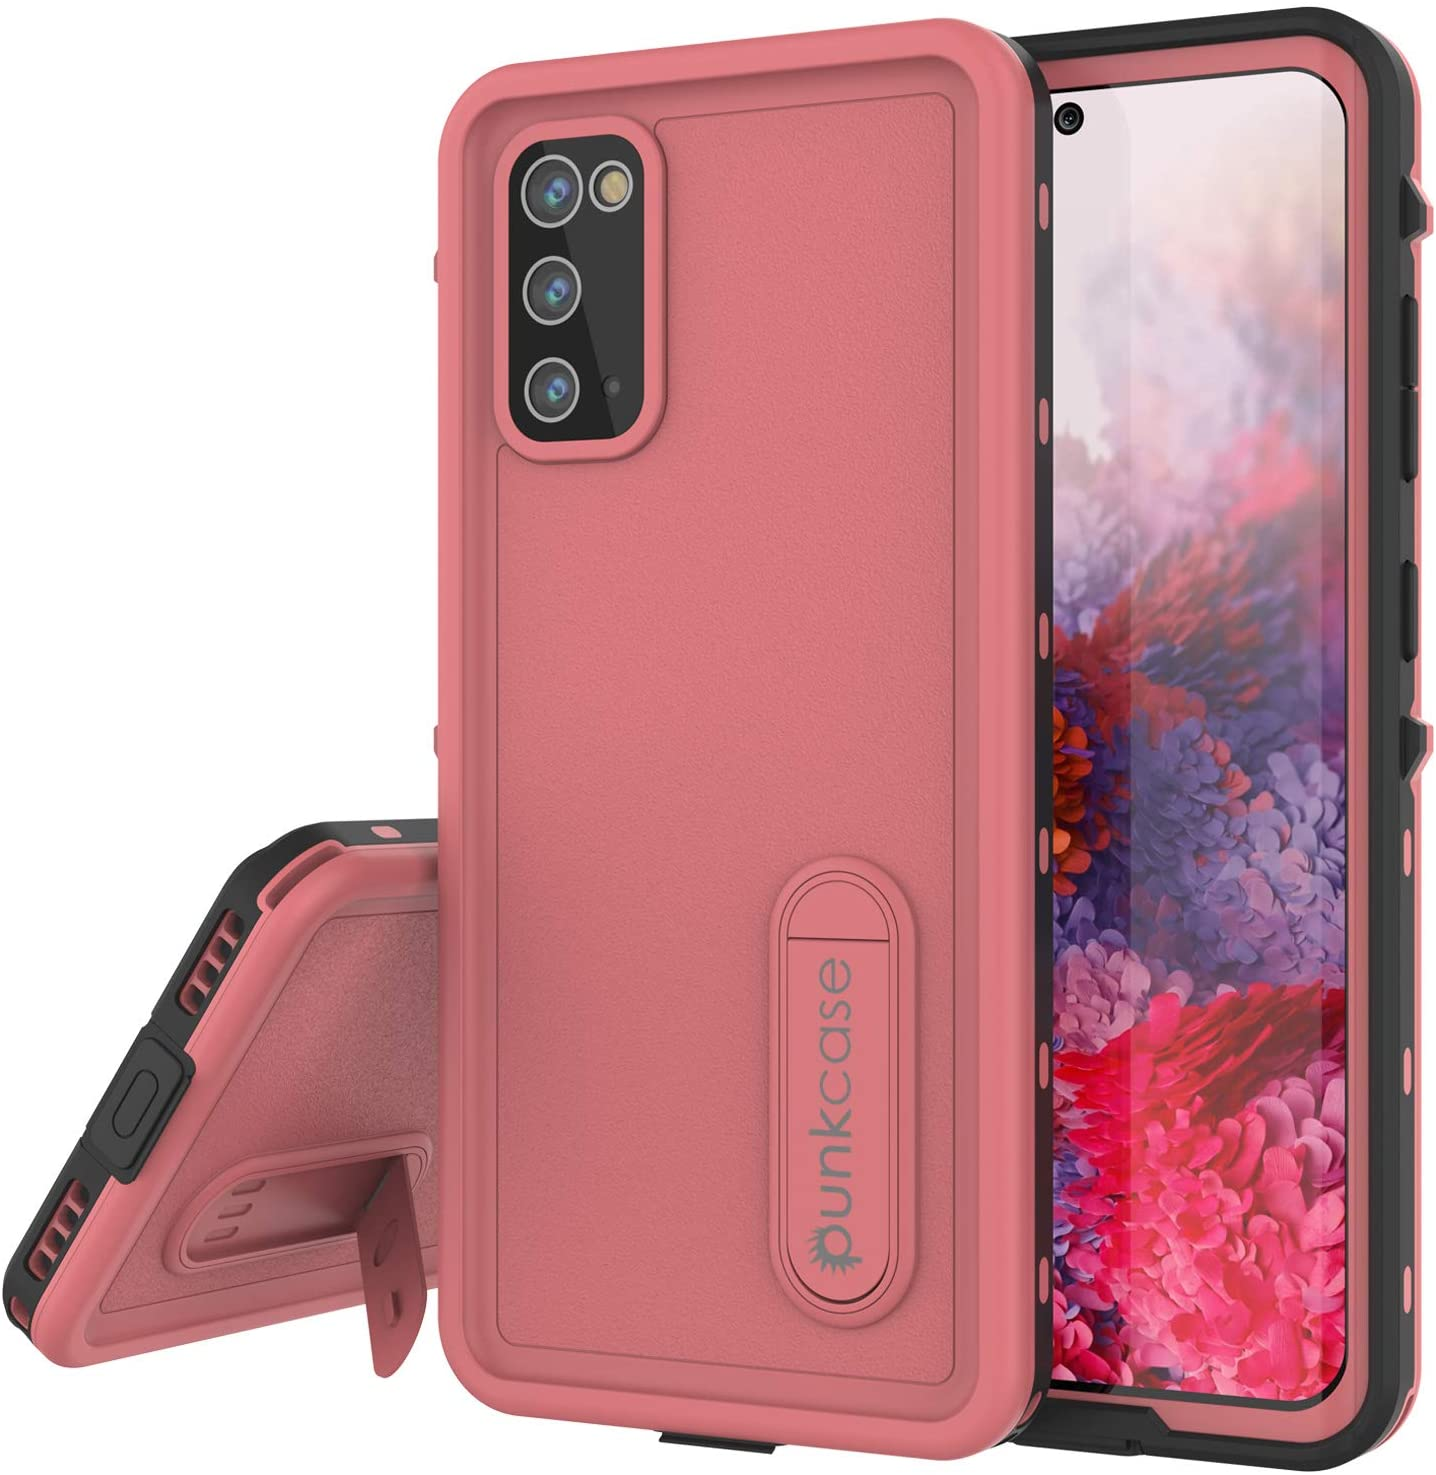 Galaxy S20 Waterproof Case, Punkcase [KickStud Series] Armor Cover [Pink]